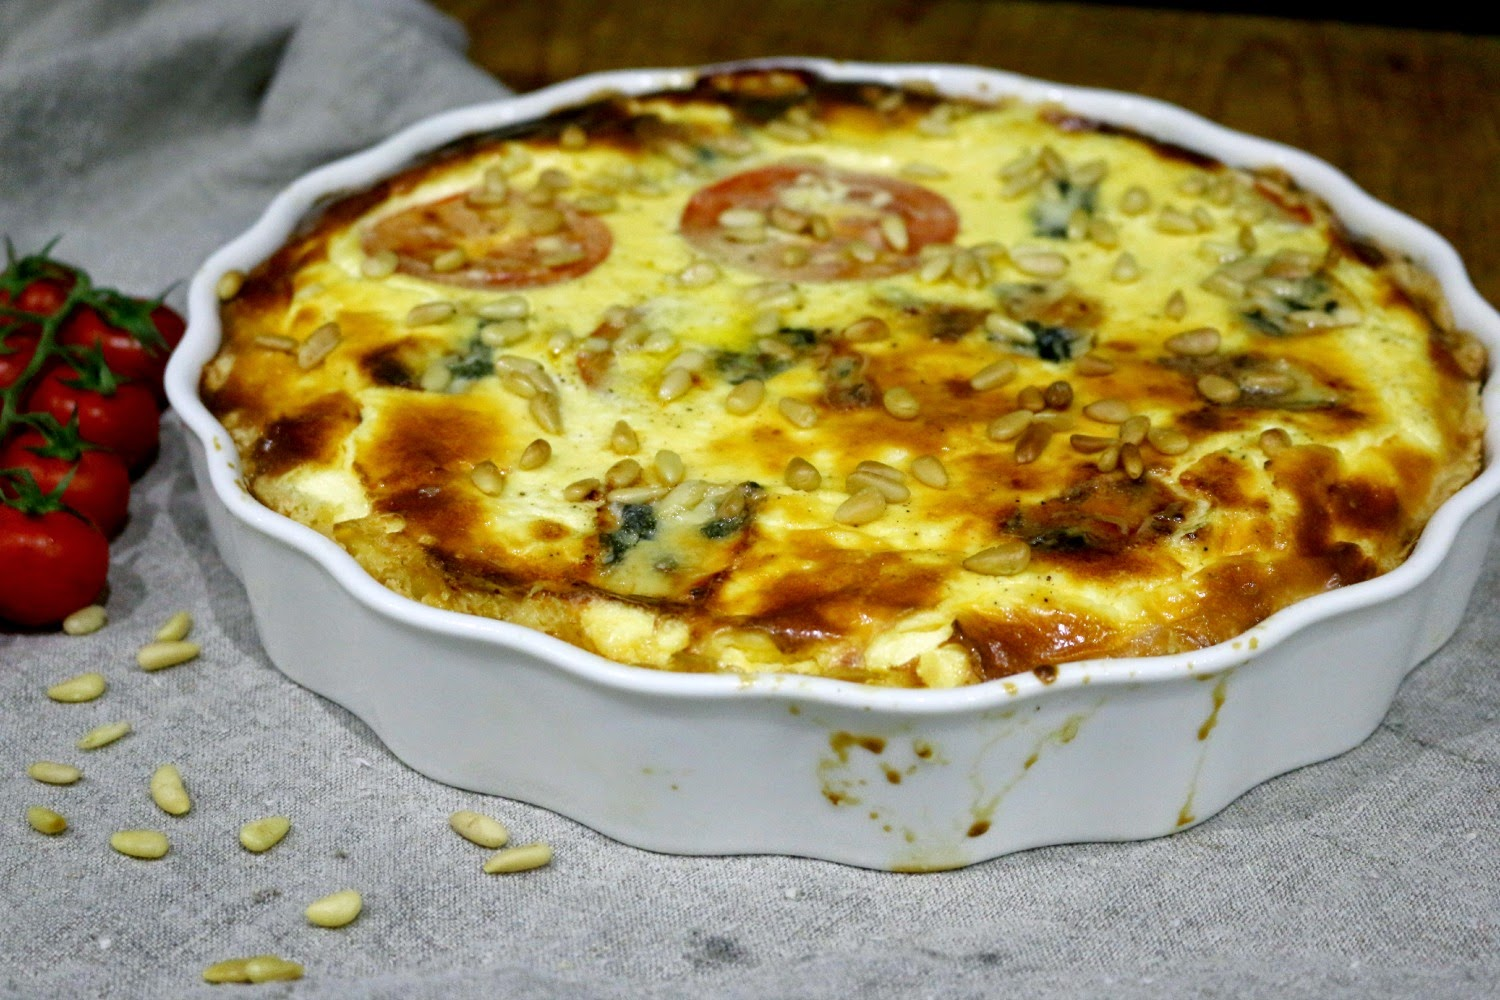 spinat gorgonzola quiche mit tomaten ich backs mir im oktober volle lotte. Black Bedroom Furniture Sets. Home Design Ideas